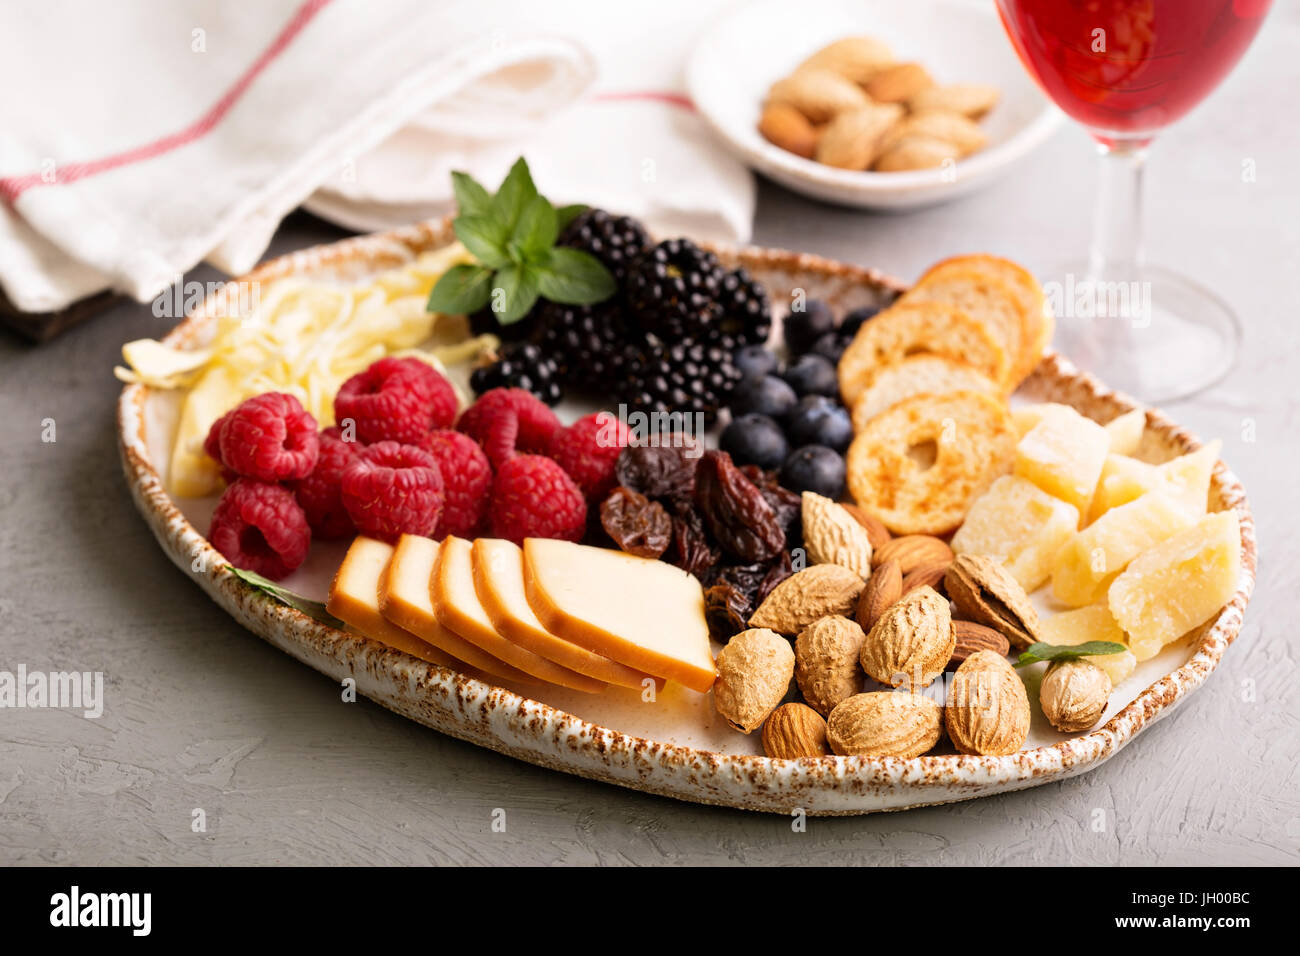 Cheese plate with nuts and berries - Stock Image